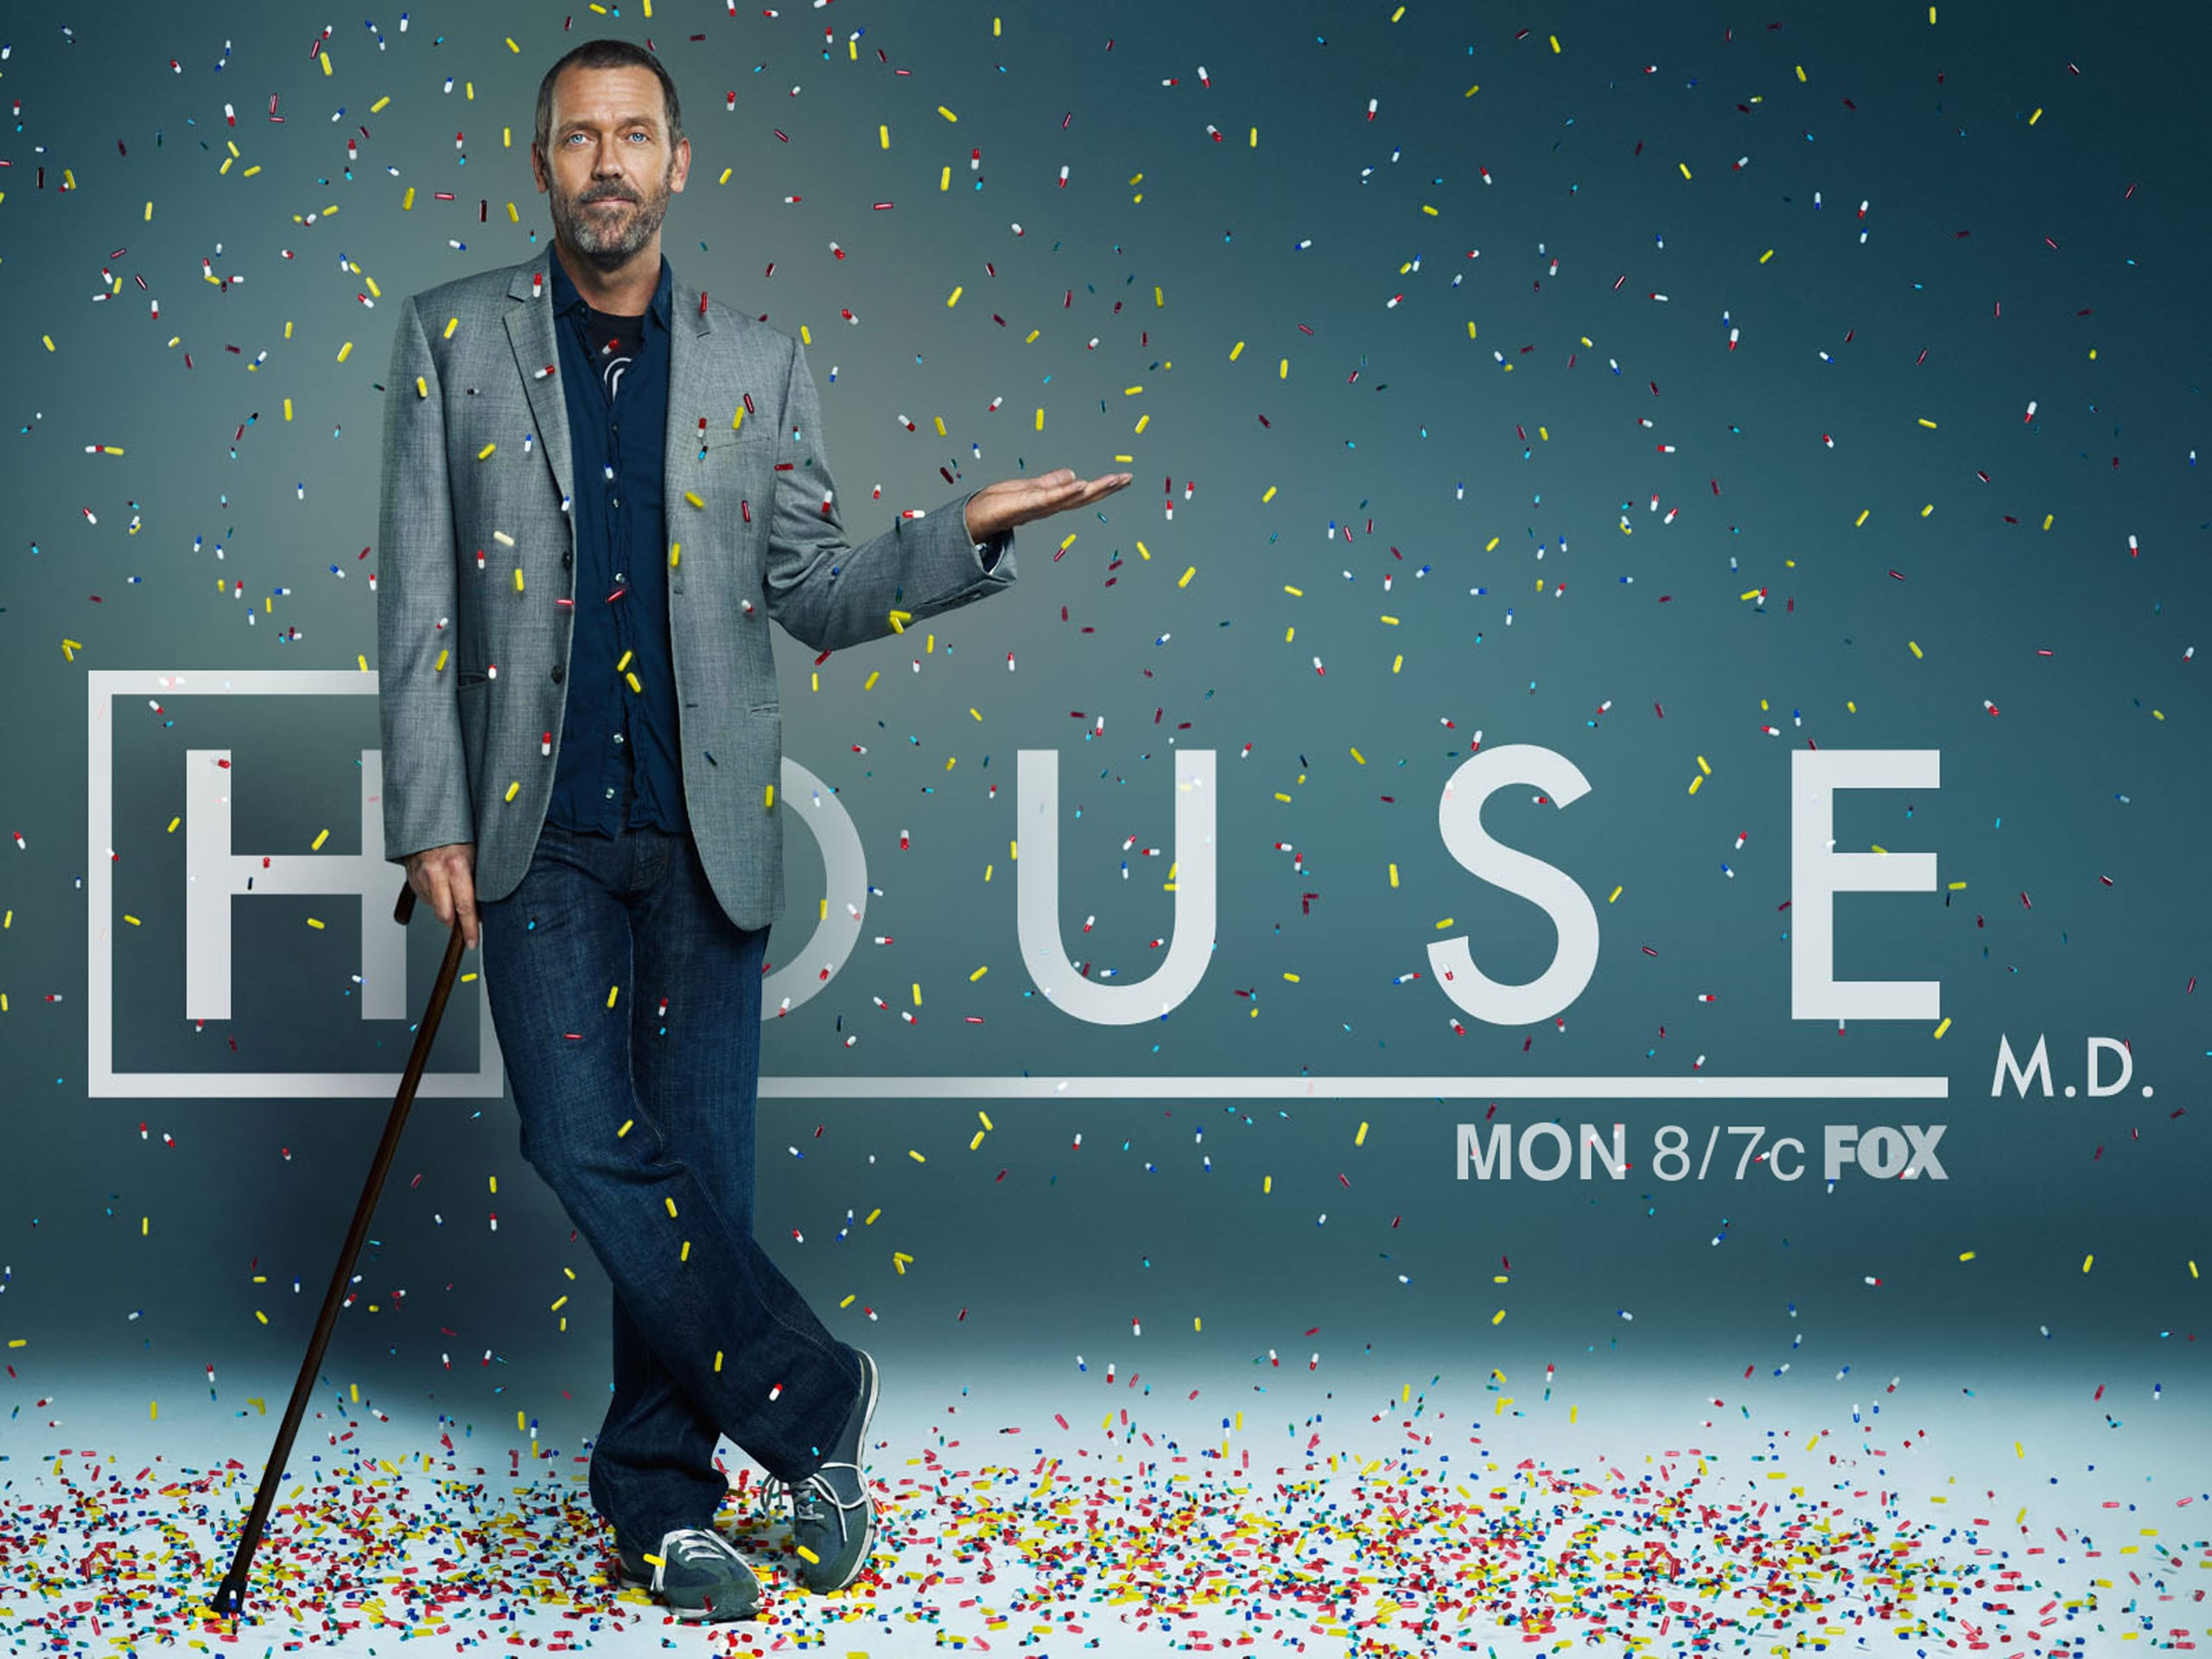 House M.d. Backgrounds